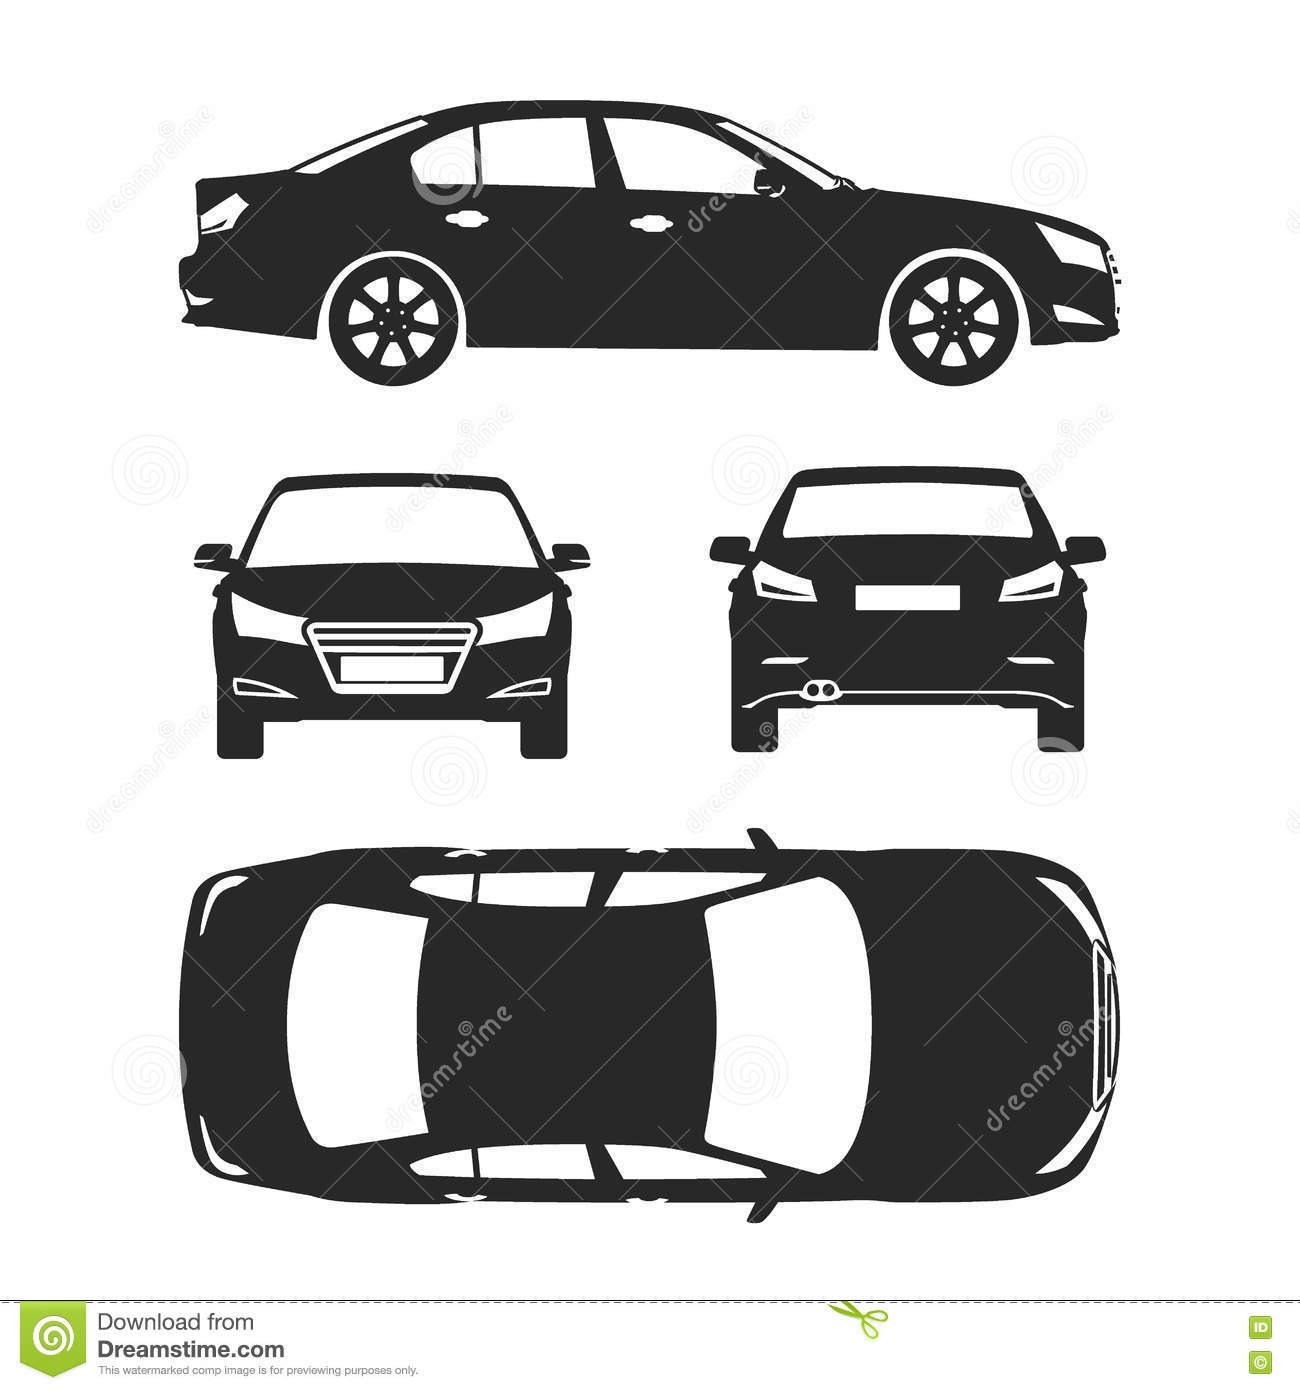 Car silhouette icons four all view top side back insurance rent car silhouette icons four all view top side back insurance rent damage condition report form blueprint malvernweather Gallery